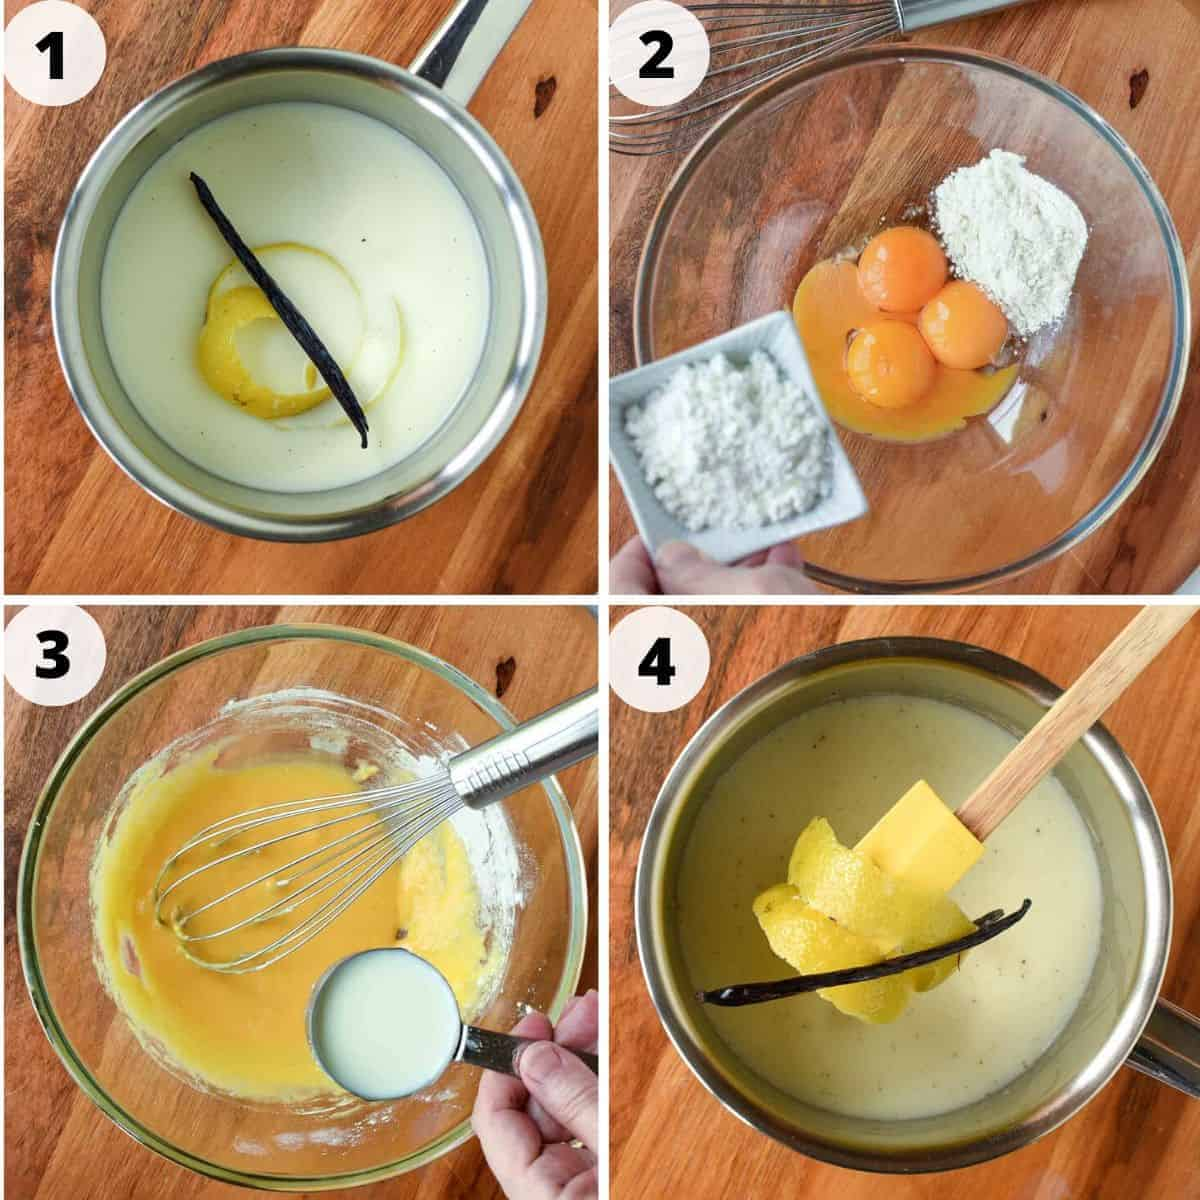 four process images for making pastry cream. image 1 - milk in saucepan with strip of lemon rind and vanilla bean, image 2 - glass bowl filled with egg yolks, flour and more flour being poured in. 3 image - yellow custard mixture with milk being whisked in. image 4 - strip of lemon rind and vanilla bean on spatula suspended over saucepan of milk.